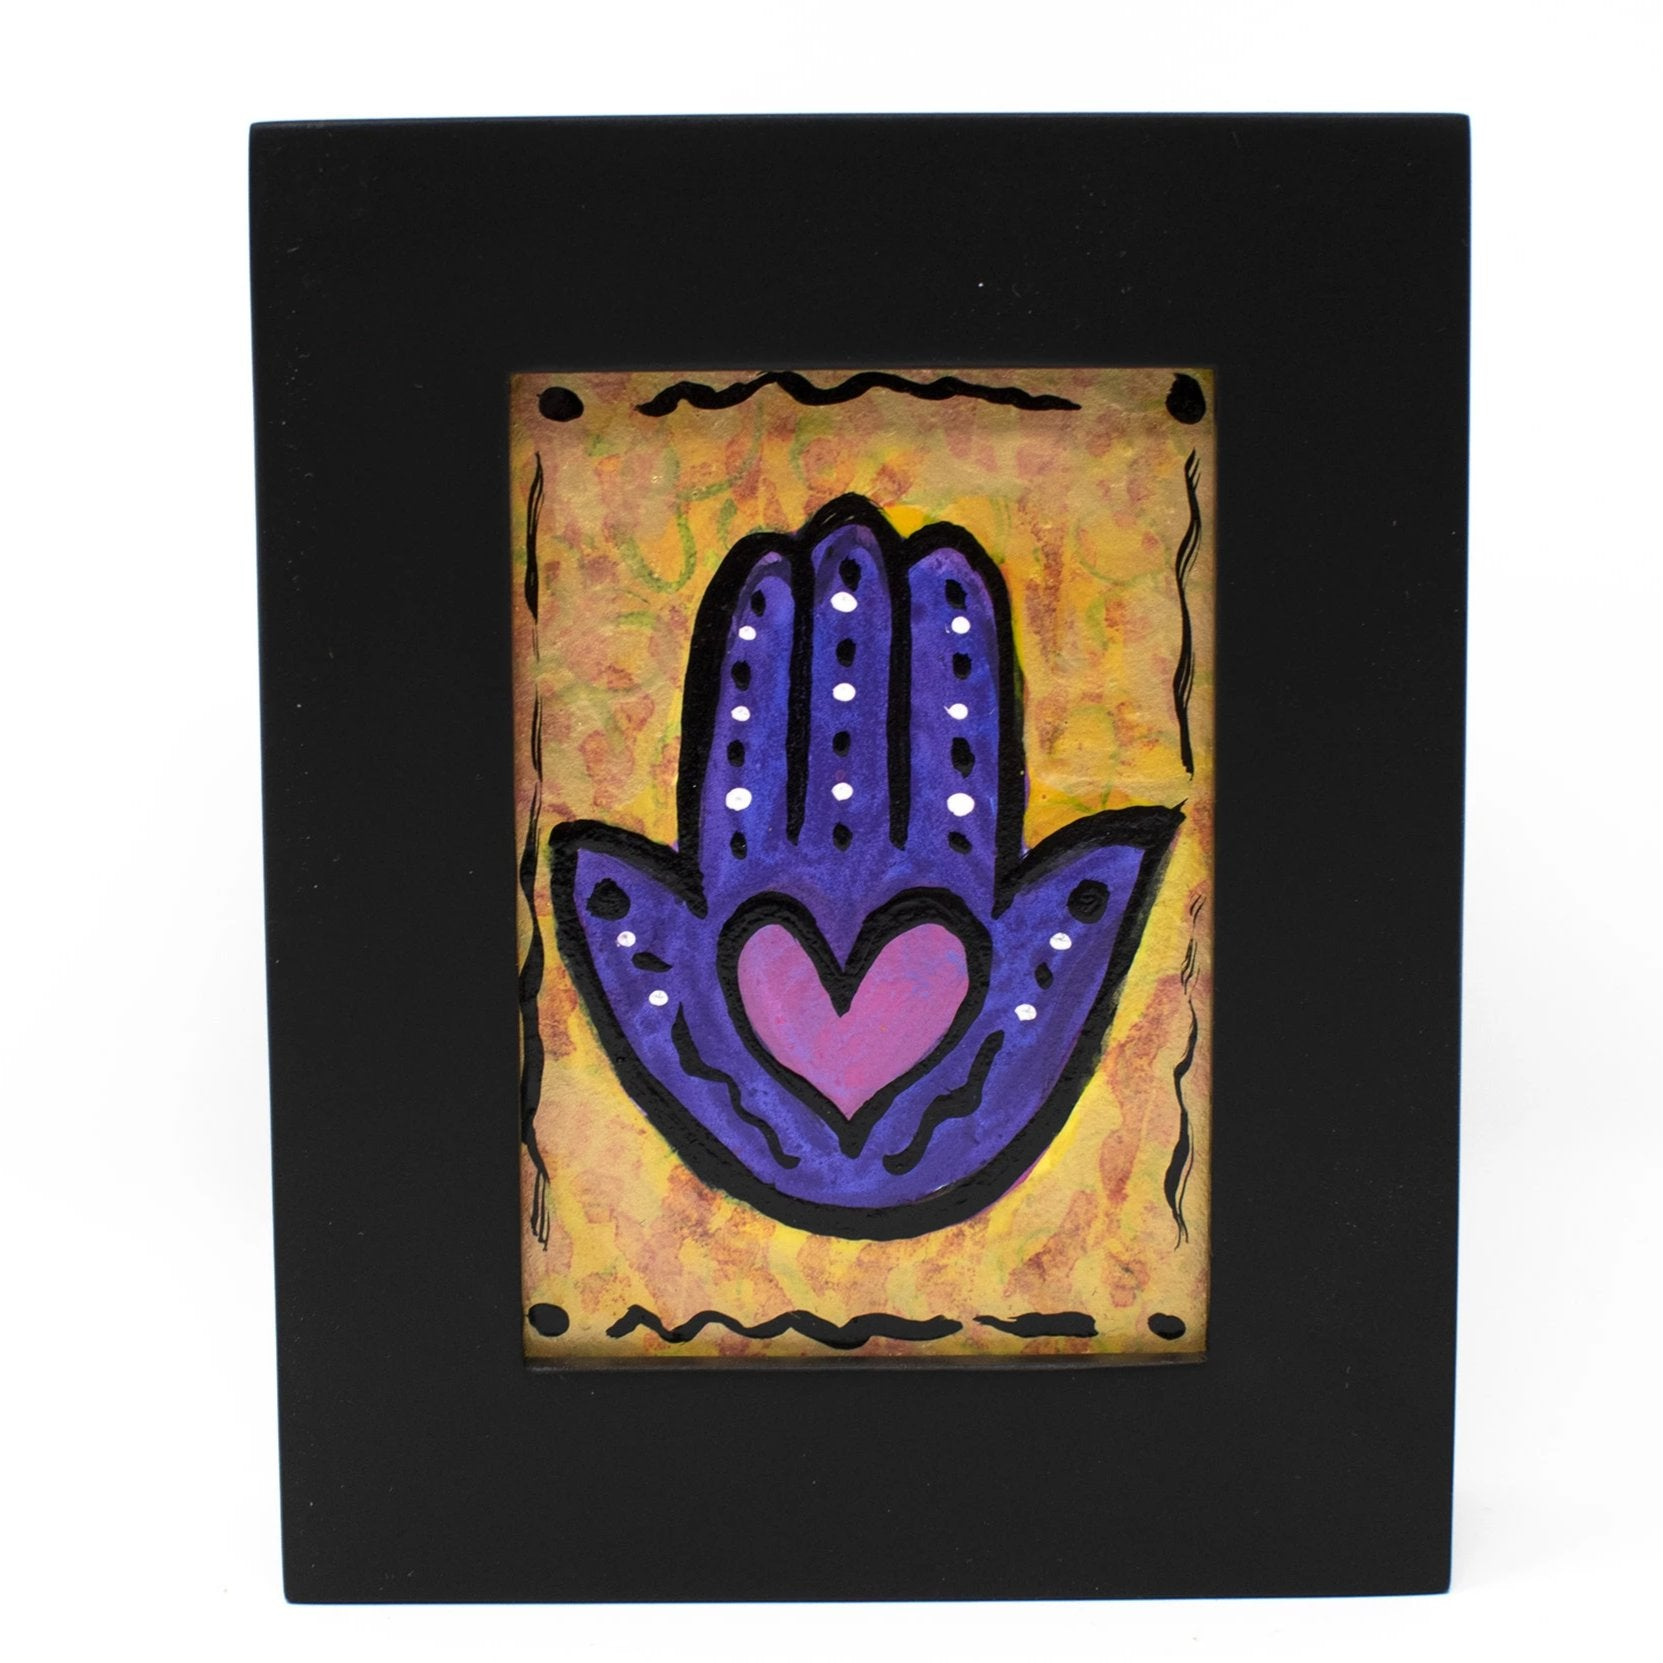 Framed Heart Hamsa Mini Painting - Cute Desk, Shelf, or Wall Art Decor